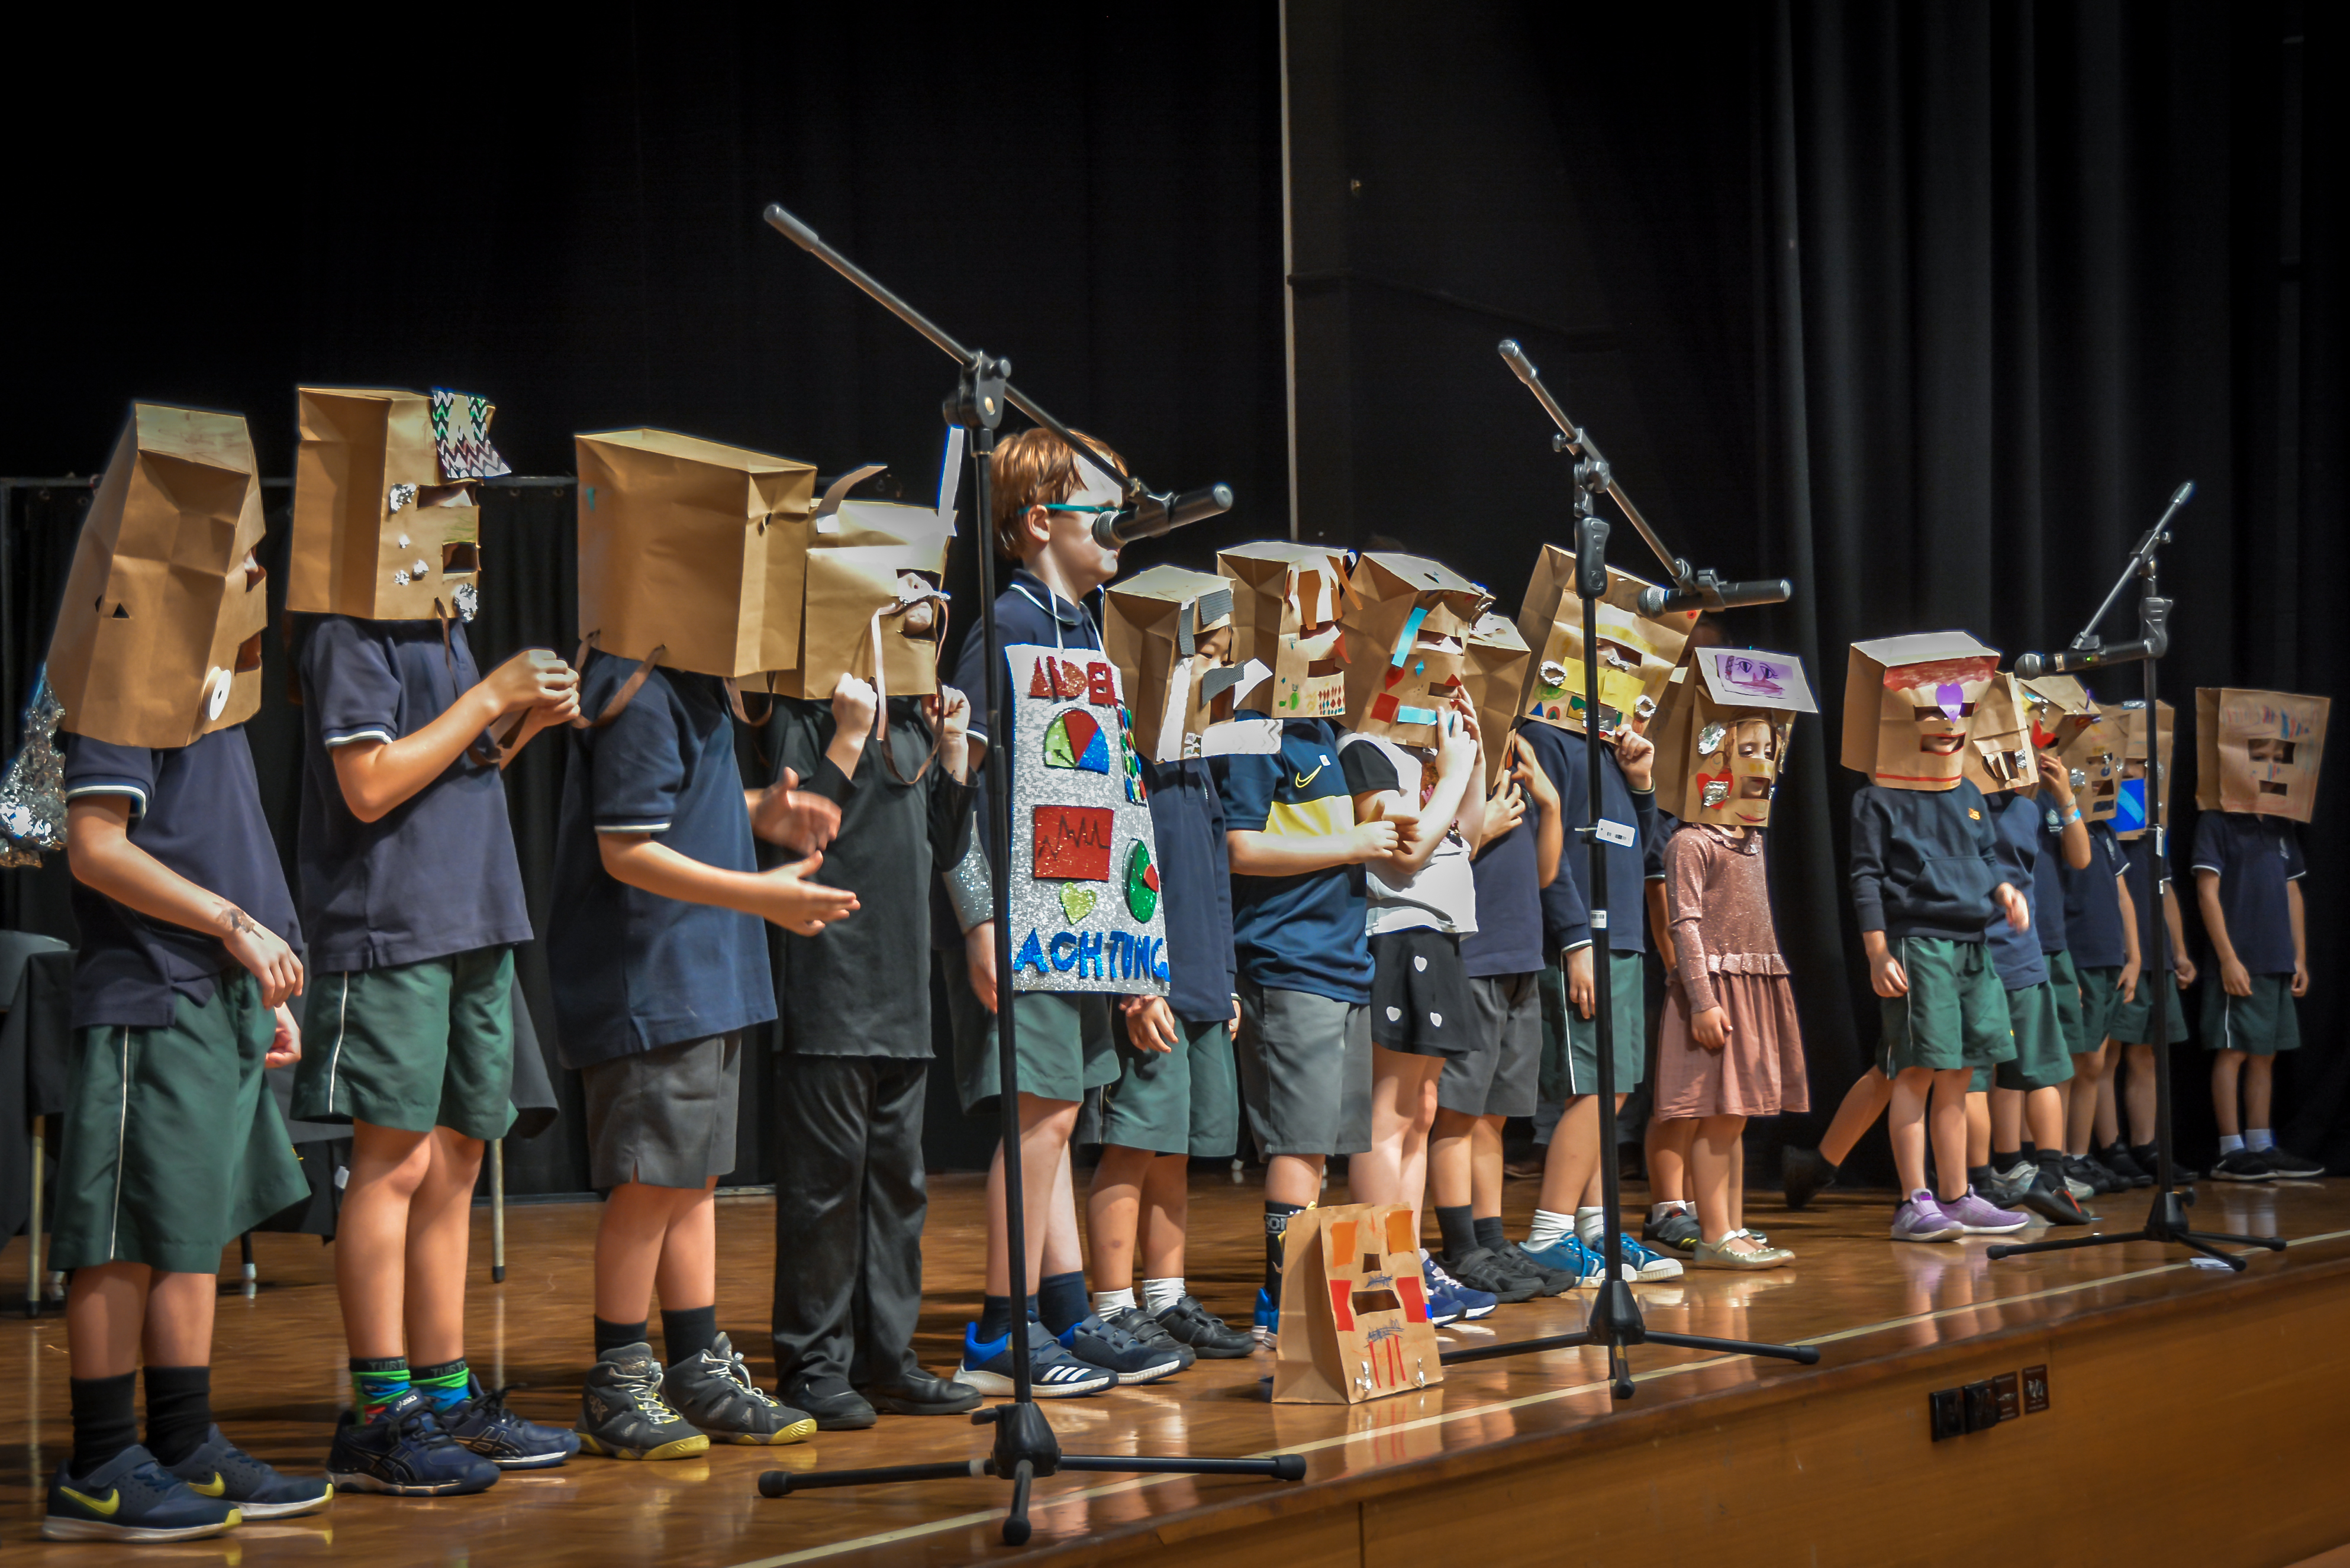 igs-primary-assembly-german-robots-performance